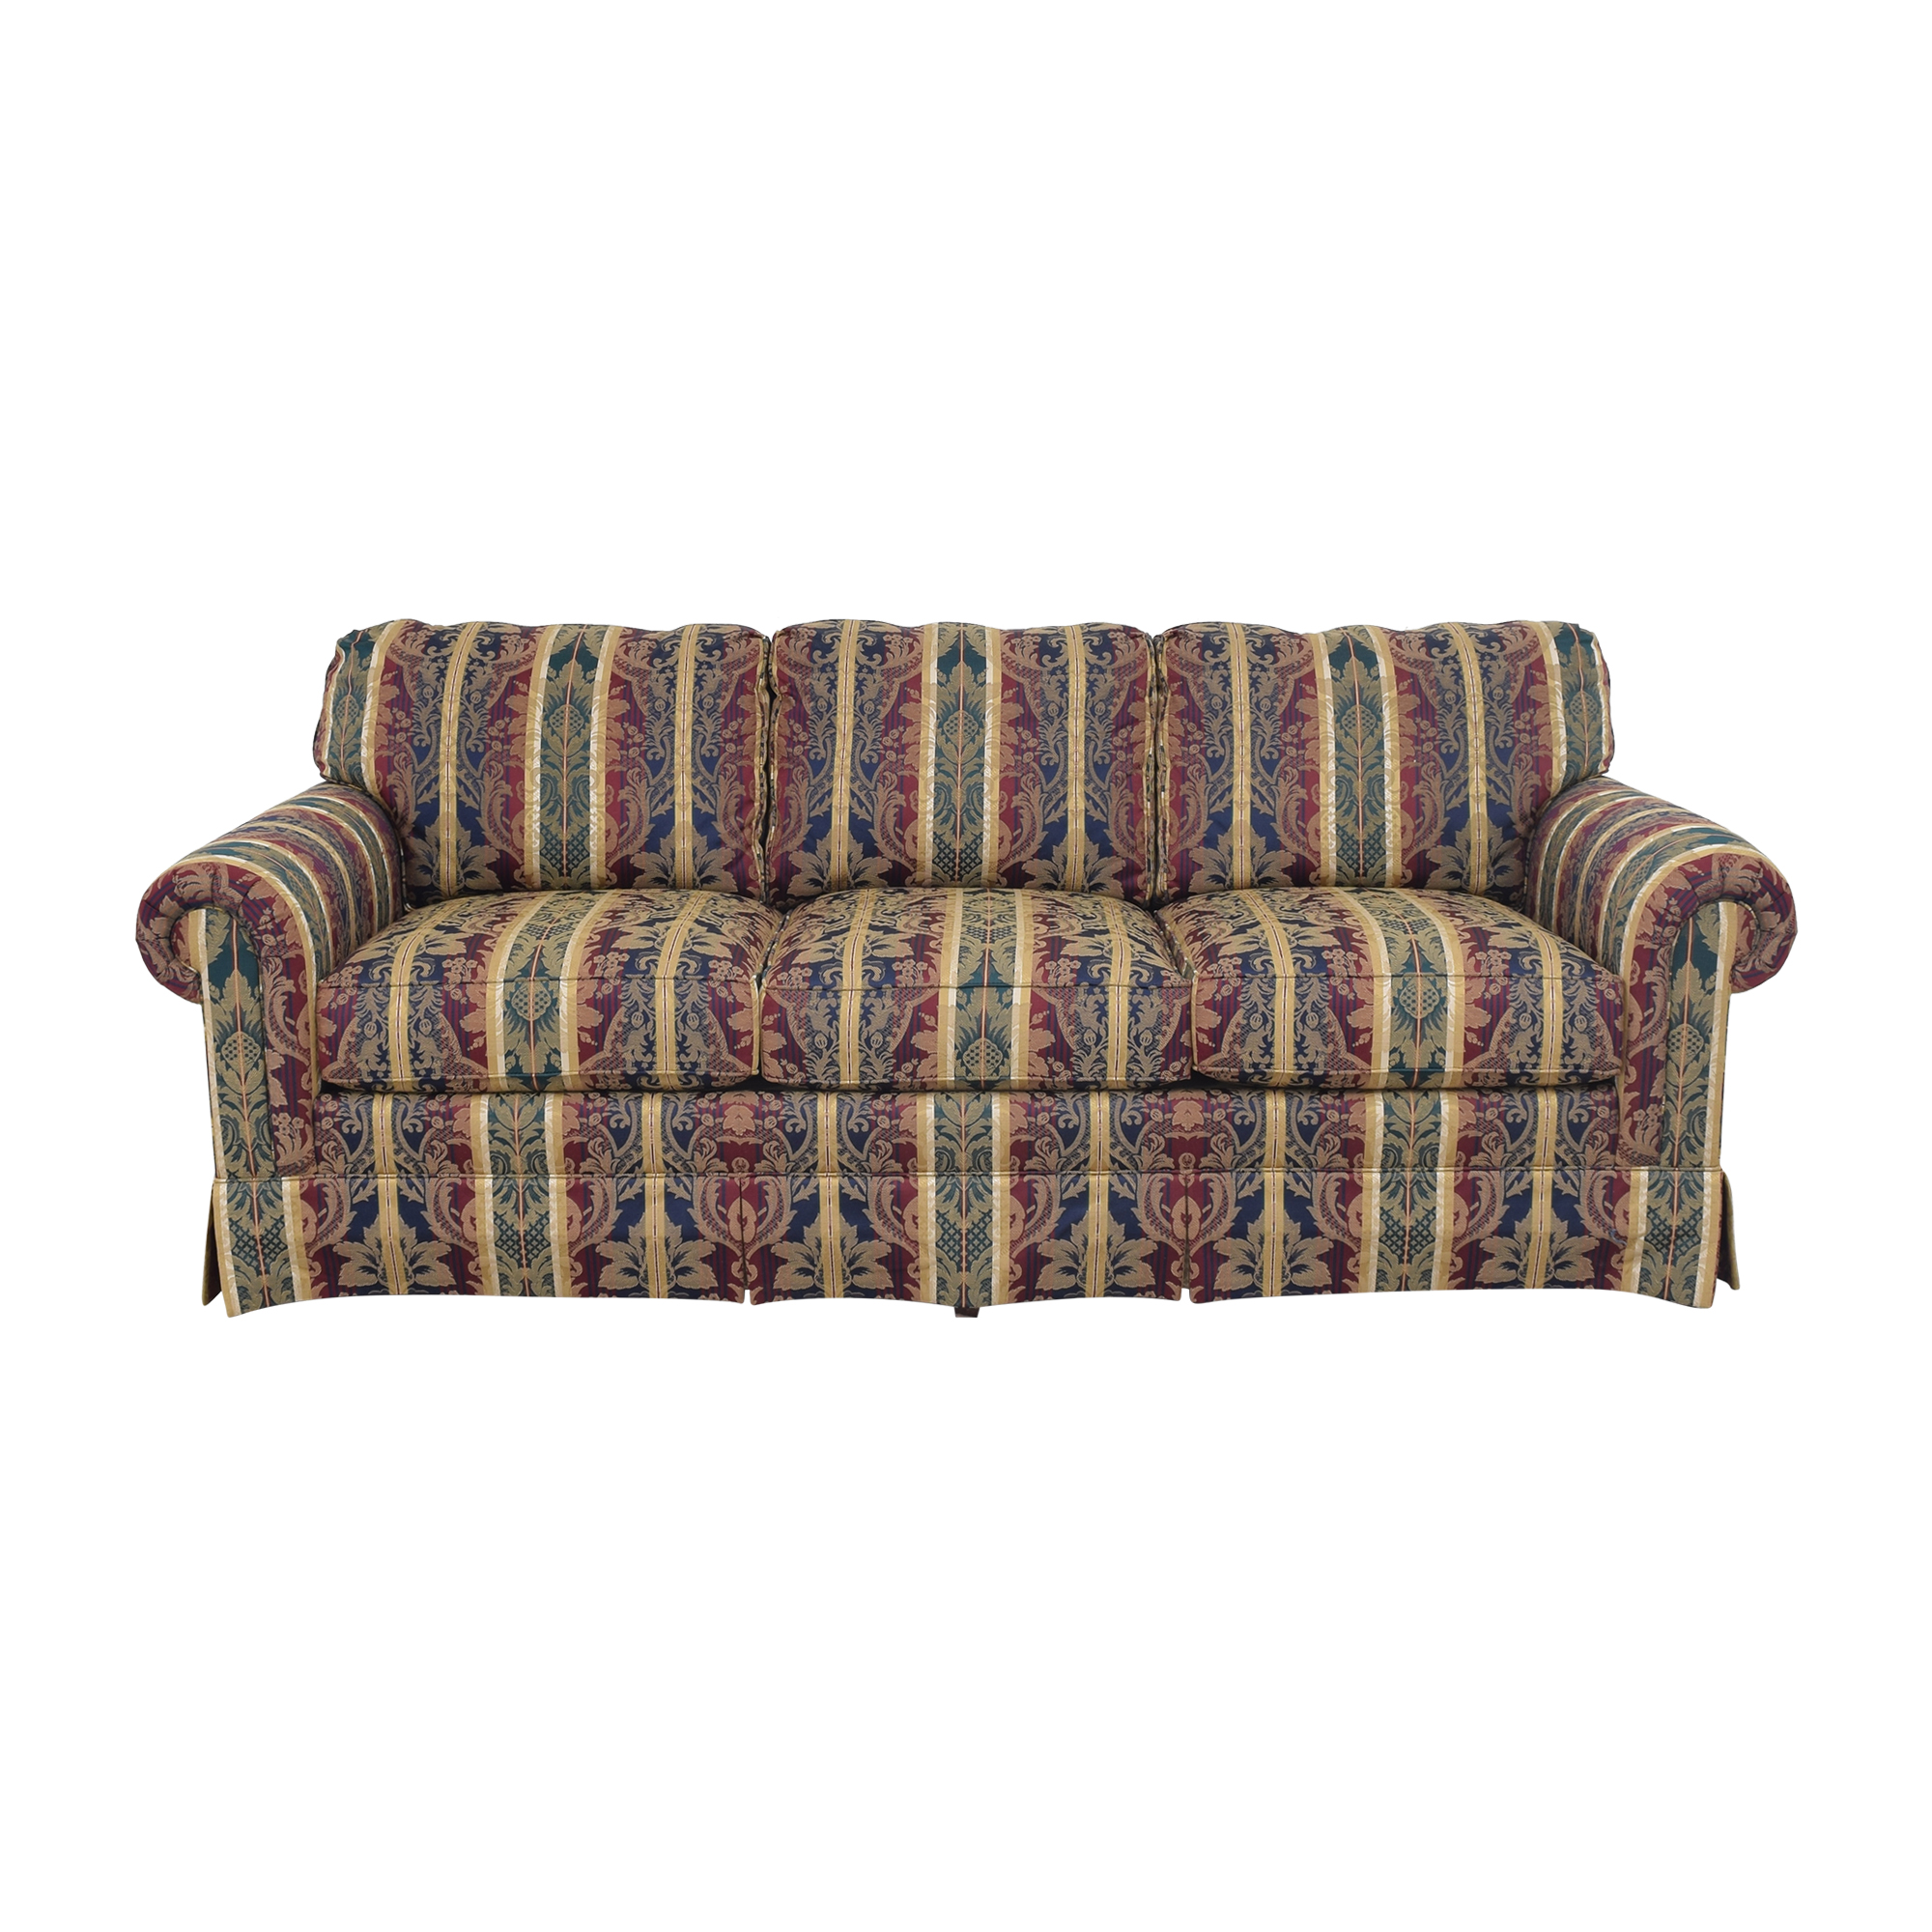 Sherrill Furniture Sherrill Furniture Roll Arm Sofa pa